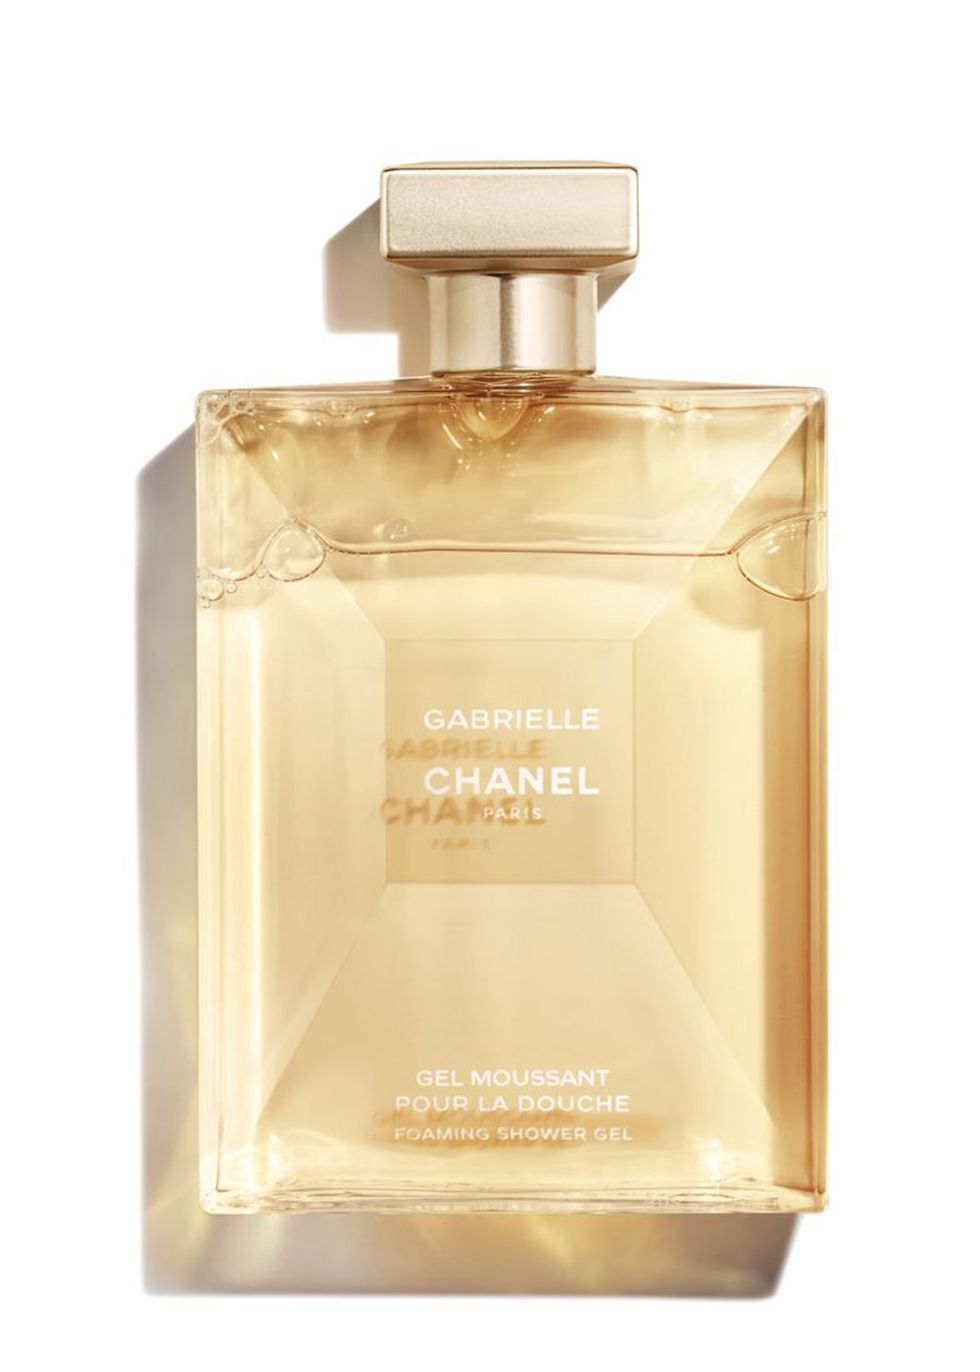 f9c76194155 Perfumed with the floral notes of the GABRIELLE CHANEL fragrance